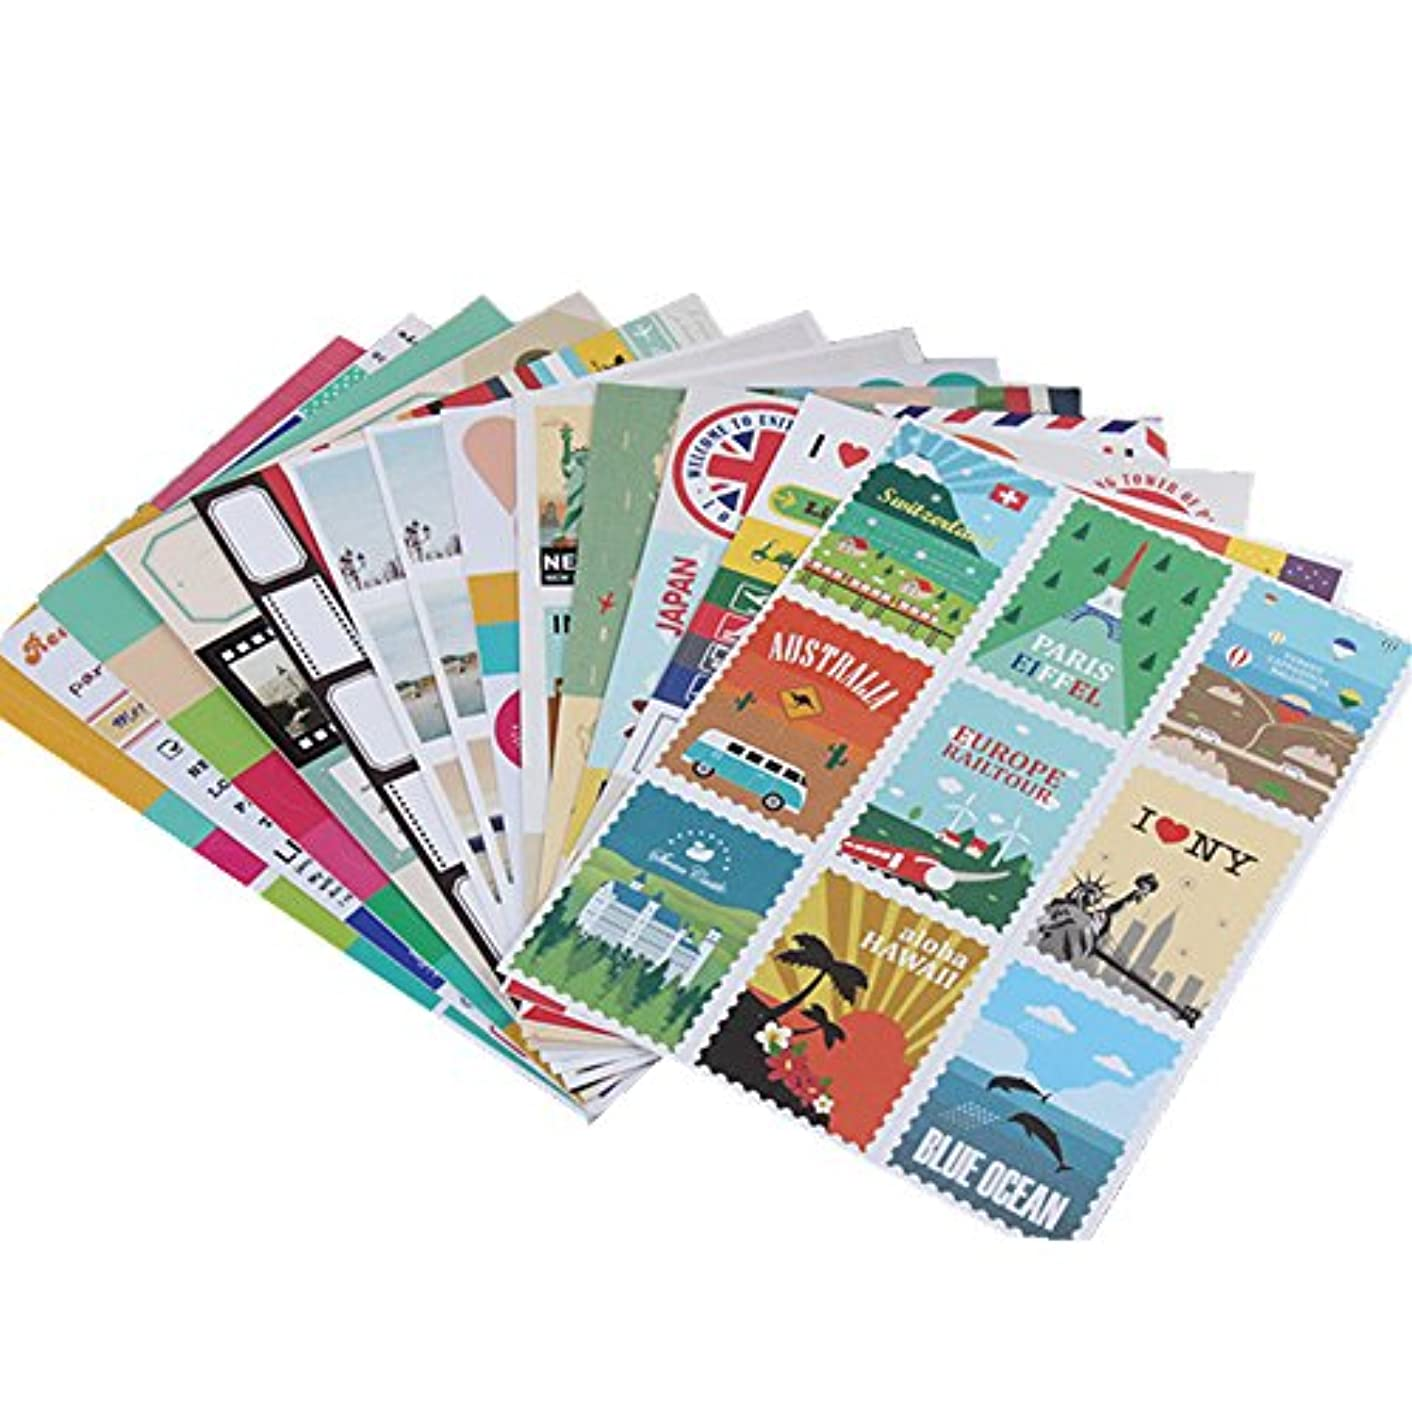 12 Sheets Paper Stamp Sticker DIY Vintage Retro Classic Travel Stickers for Diary Scrapbooking Calendar Planner Stationery Decor School Supplies(8 Sheets Paper Sticker + 4 Sheets PVC Sticker)